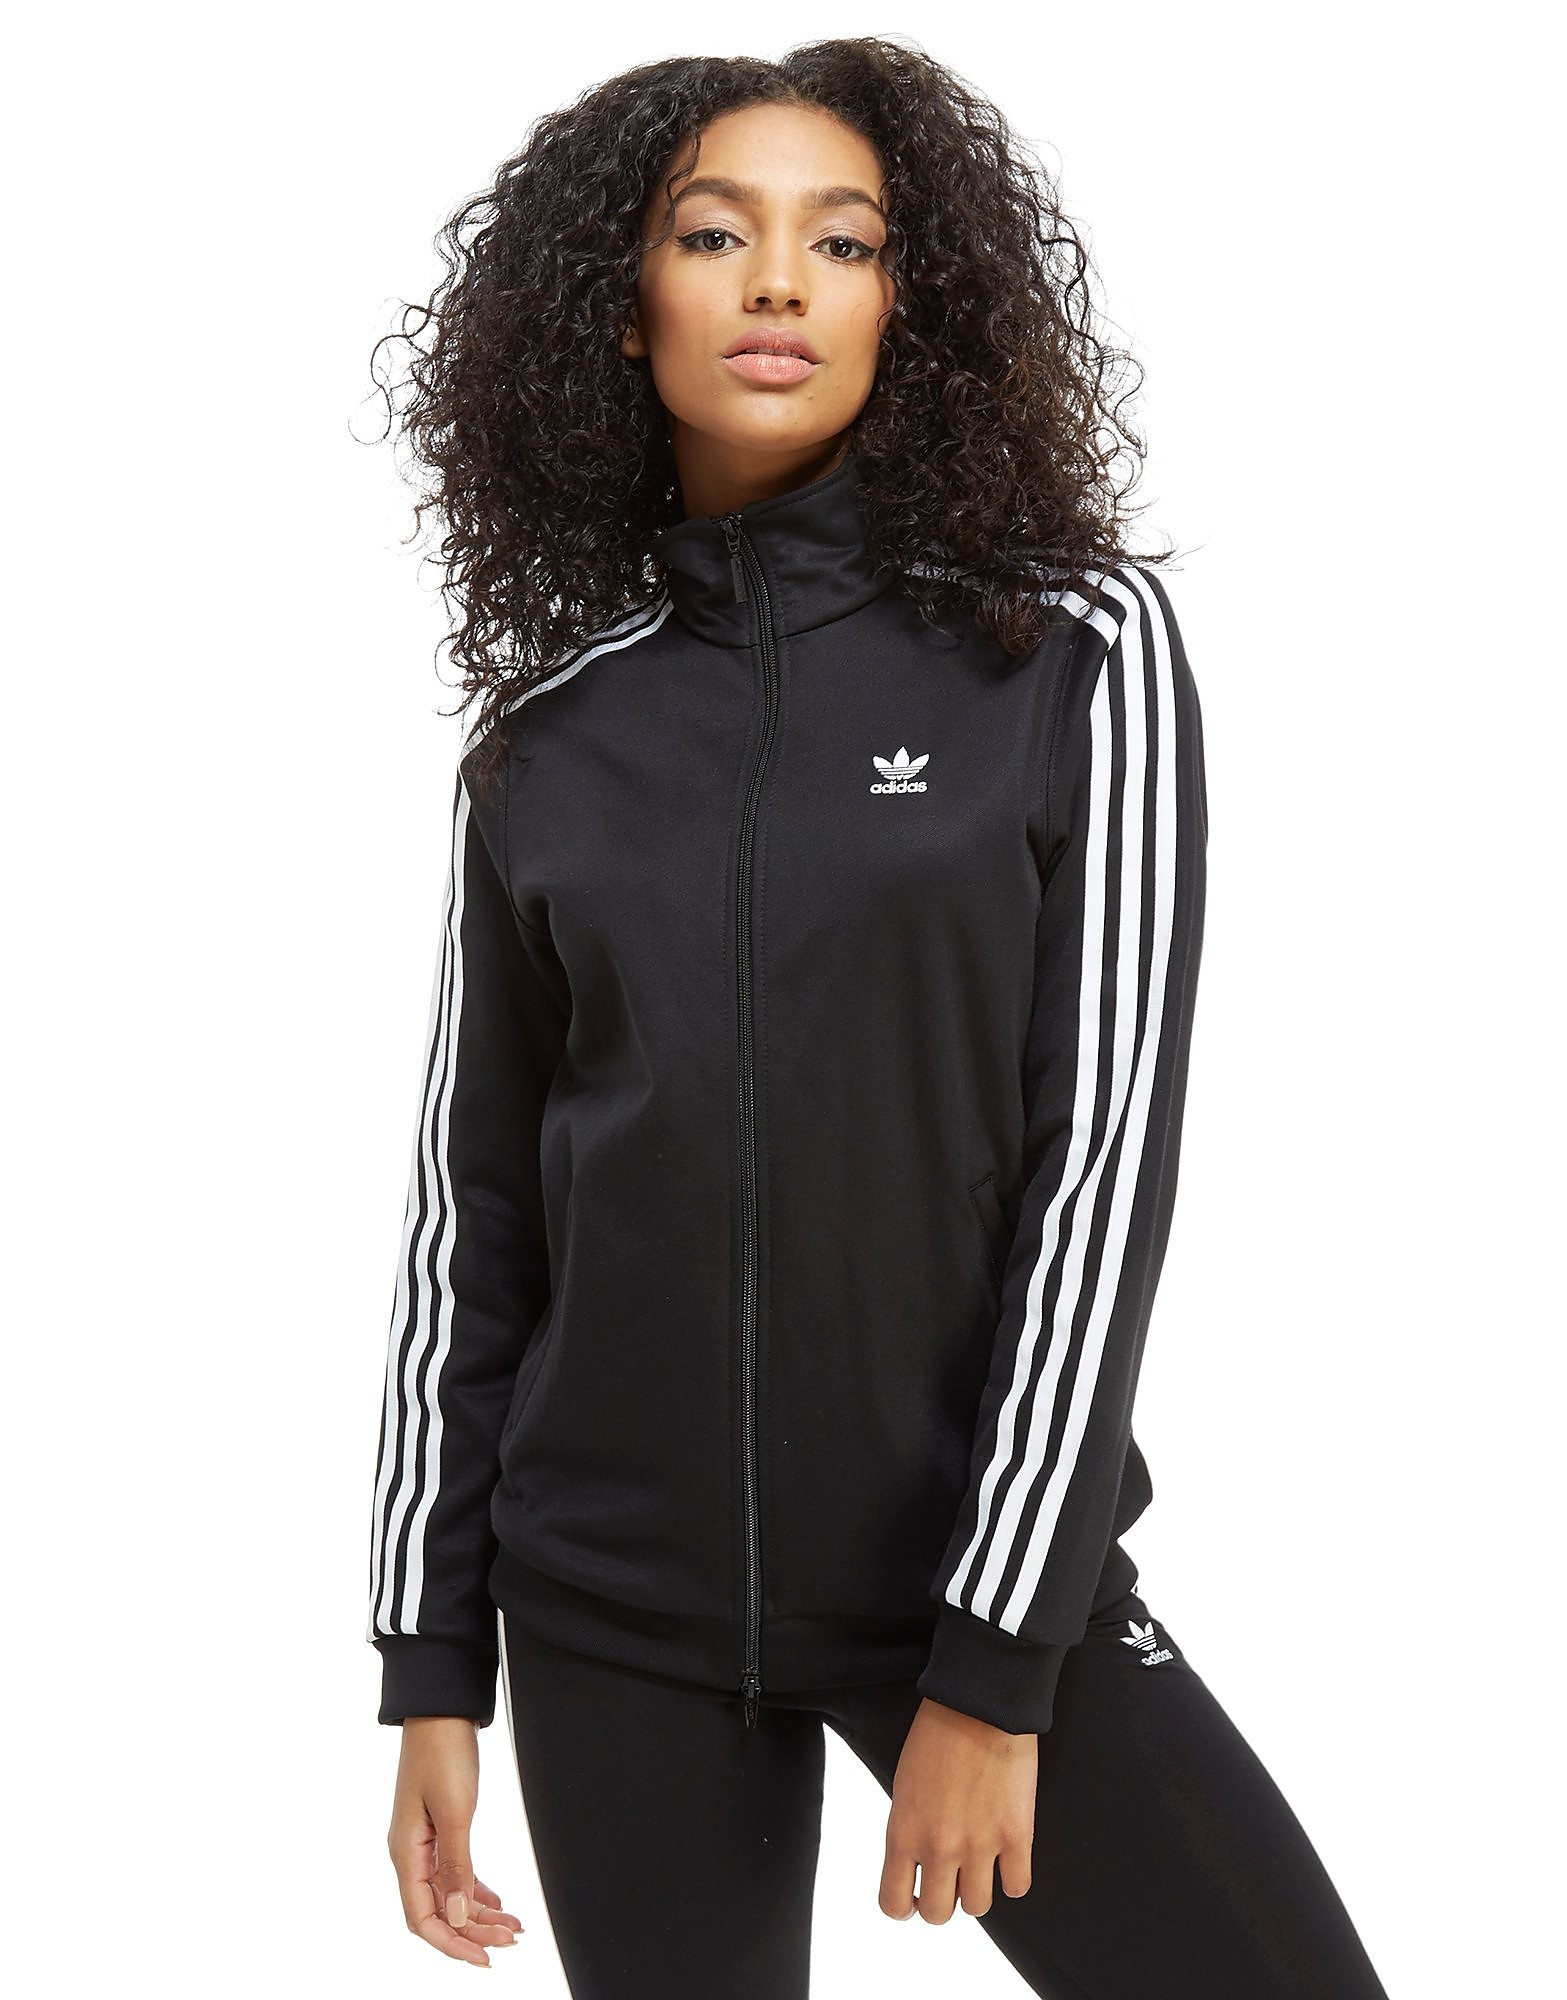 adidas Originals Contemporary Track Top